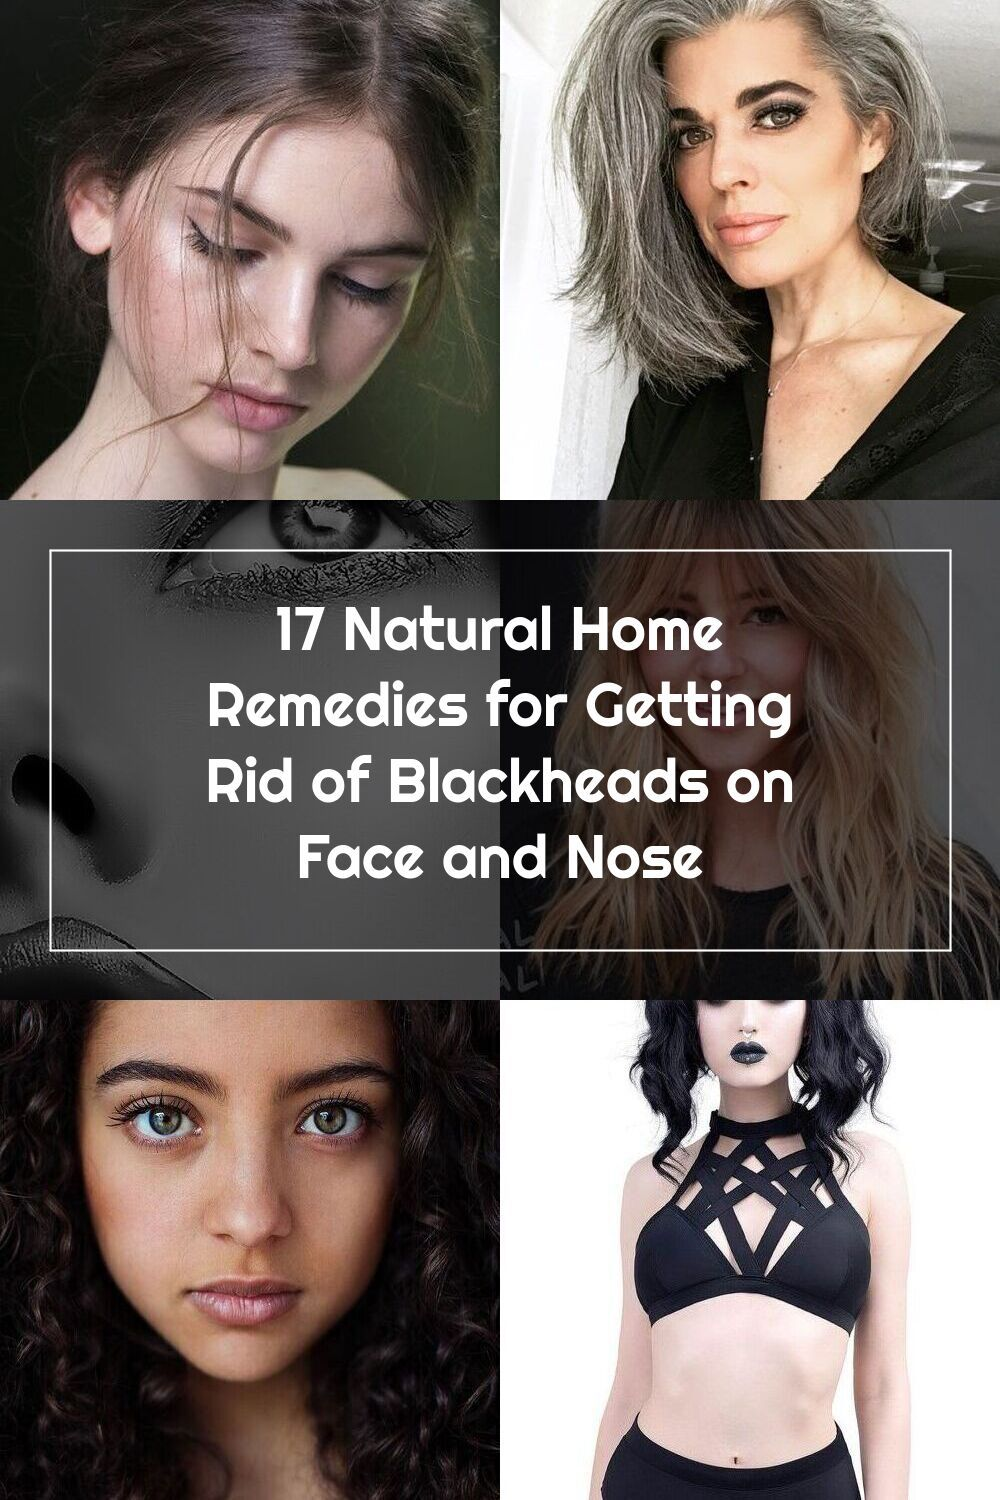 17 Natural Home Remedies for Getting Rid of Blackheads on